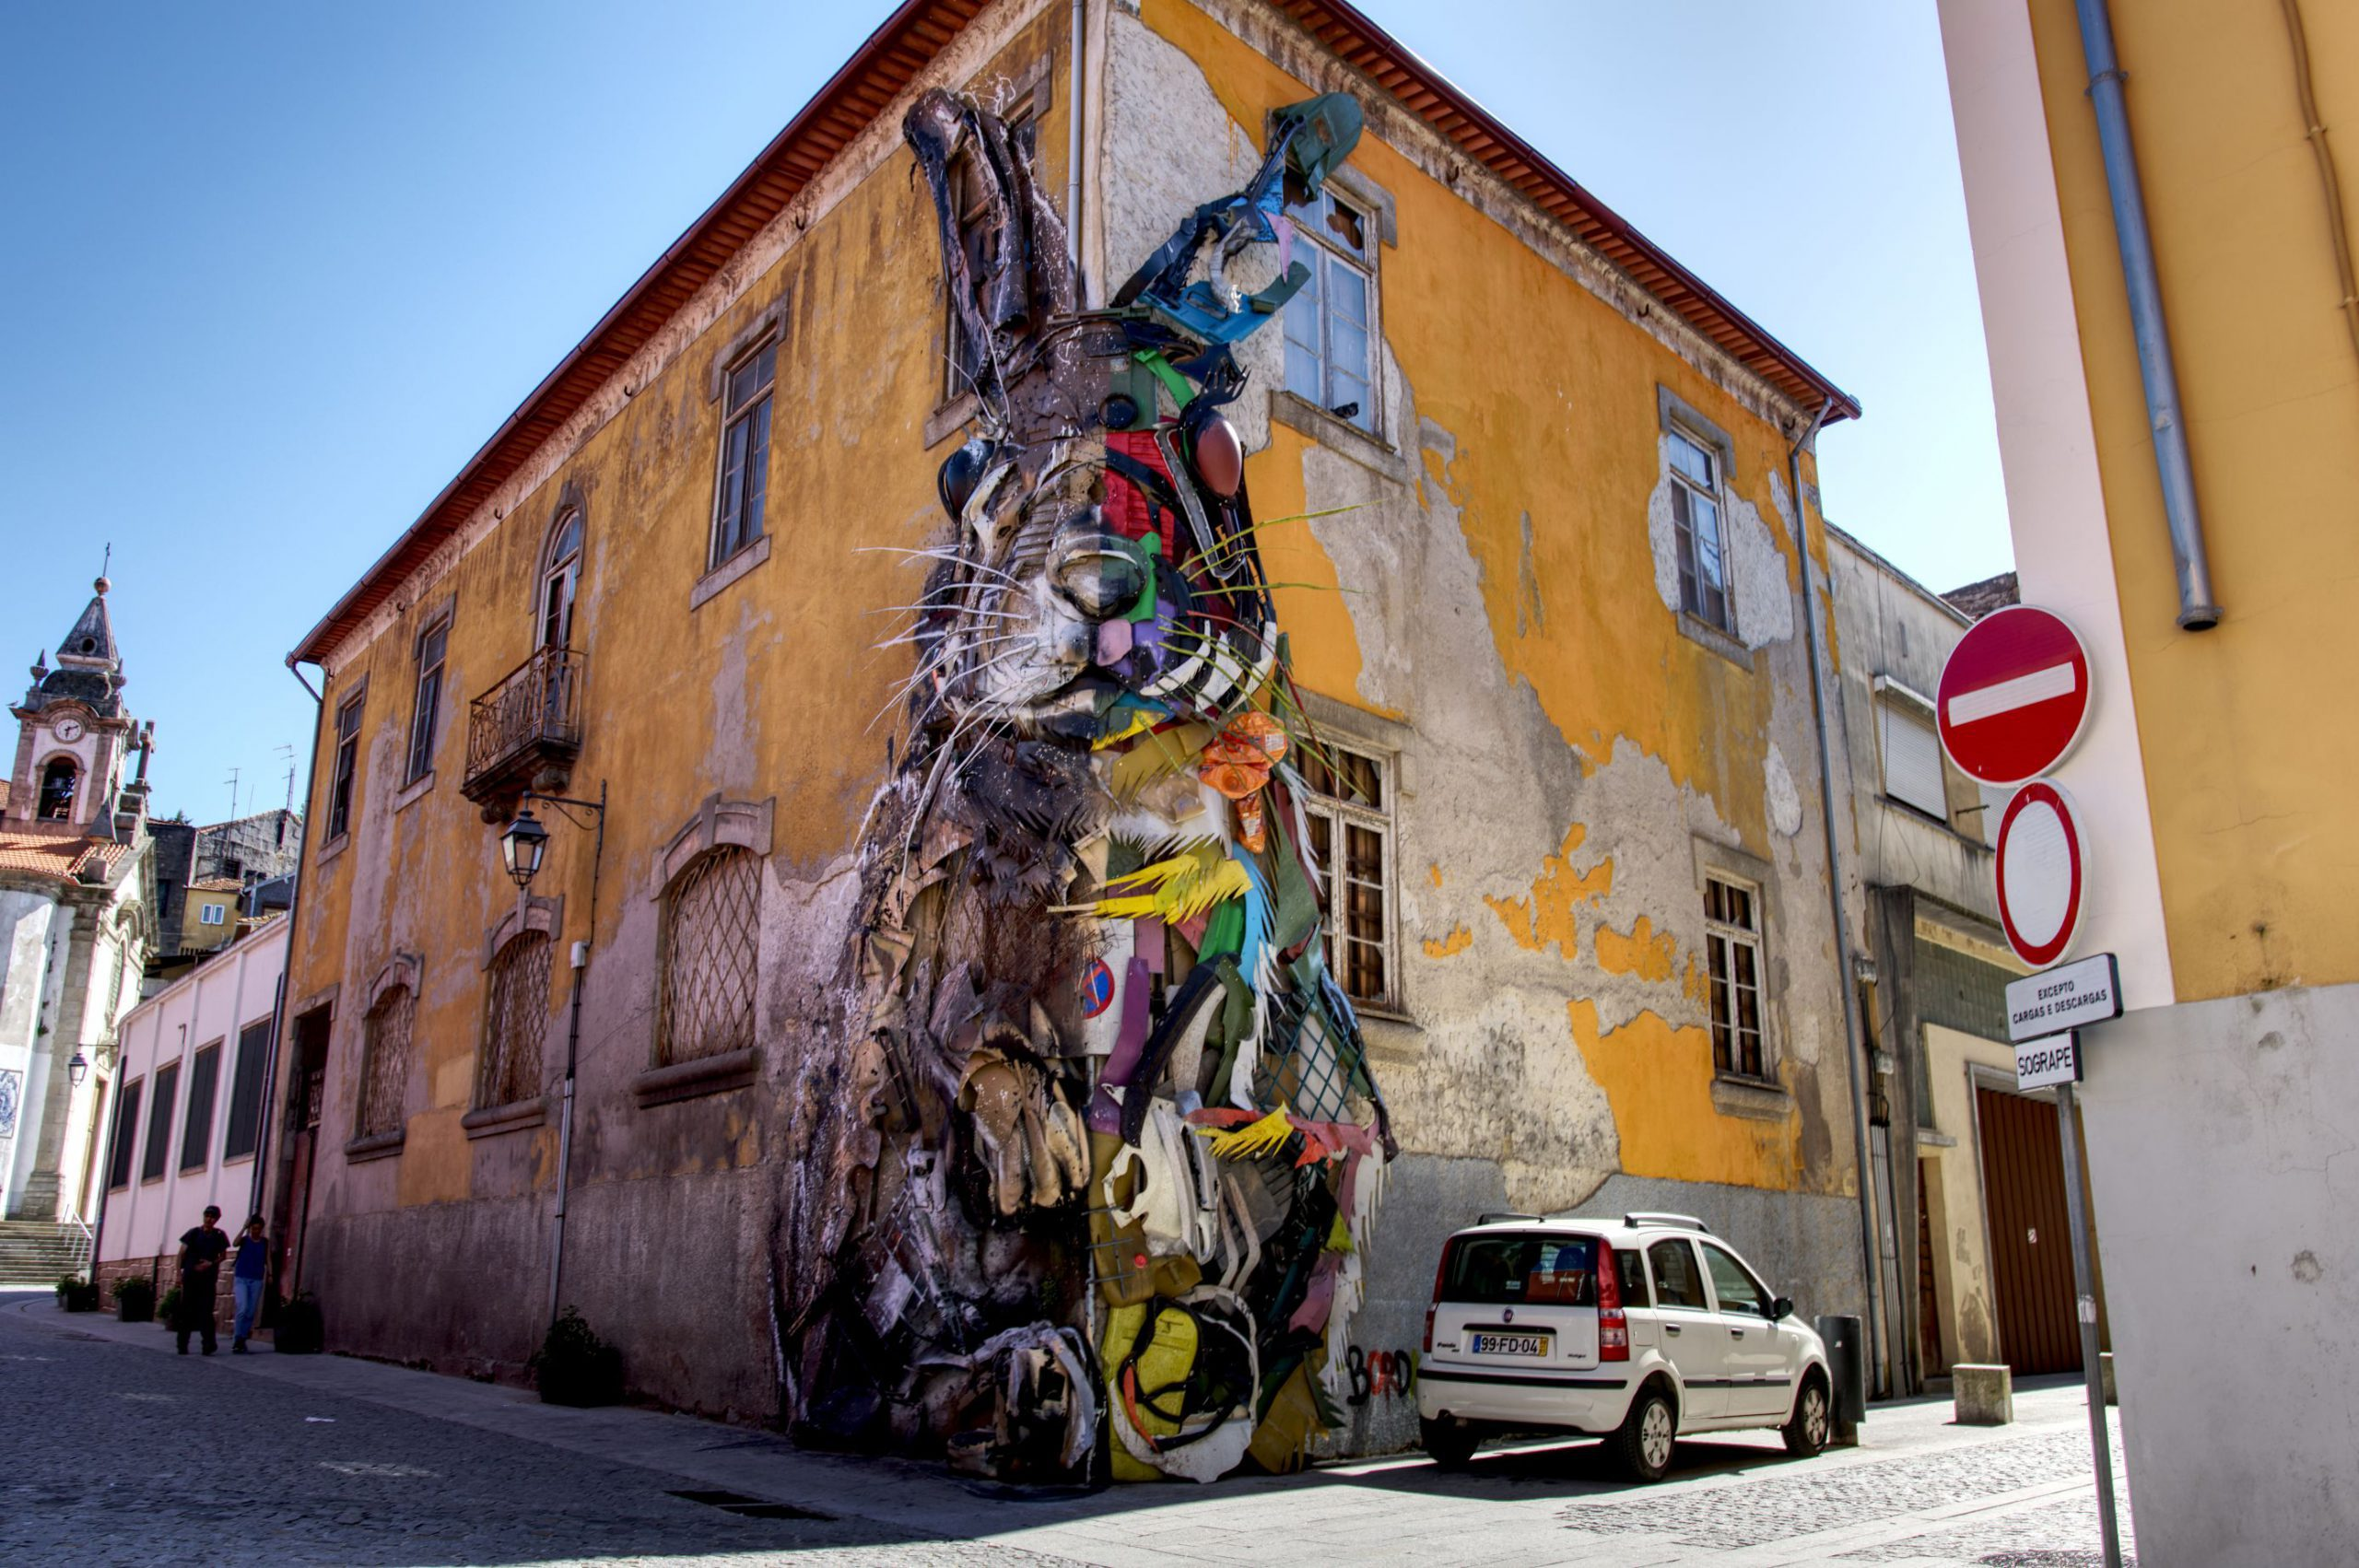 On the Gaia side of the Douro River you will find numerous street art installations